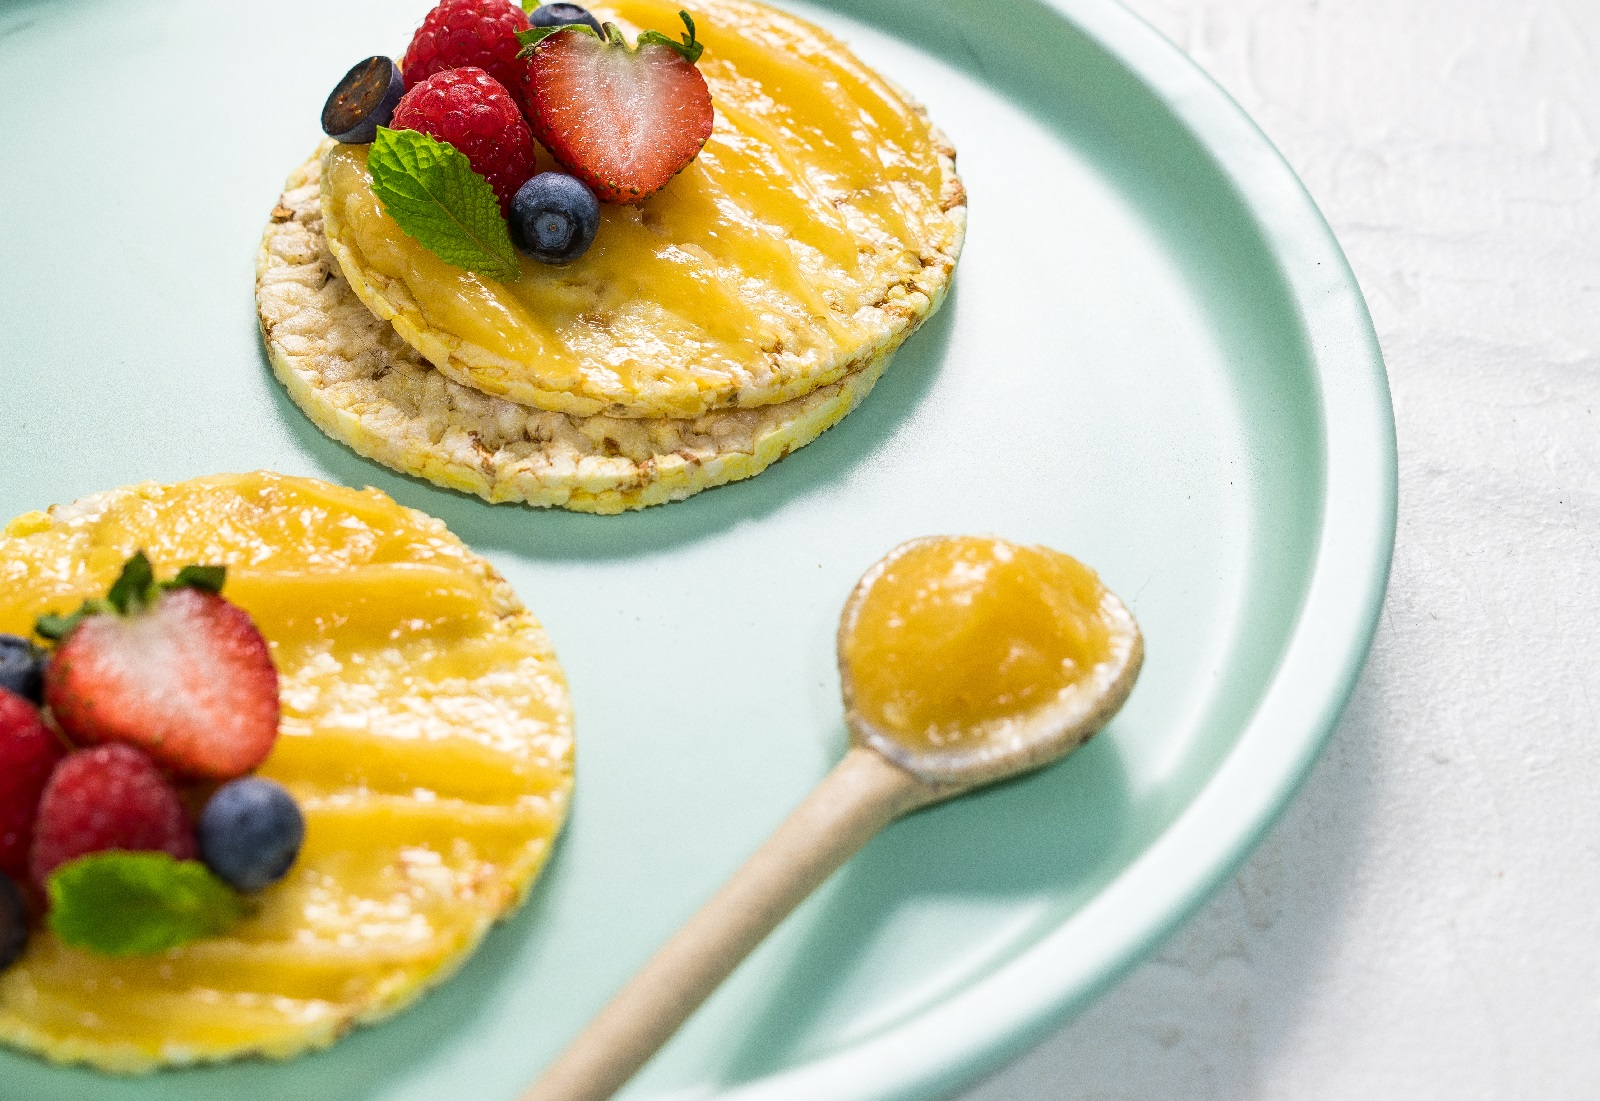 Lemon Curd, berries & mint on CORN THINS slices as a snack